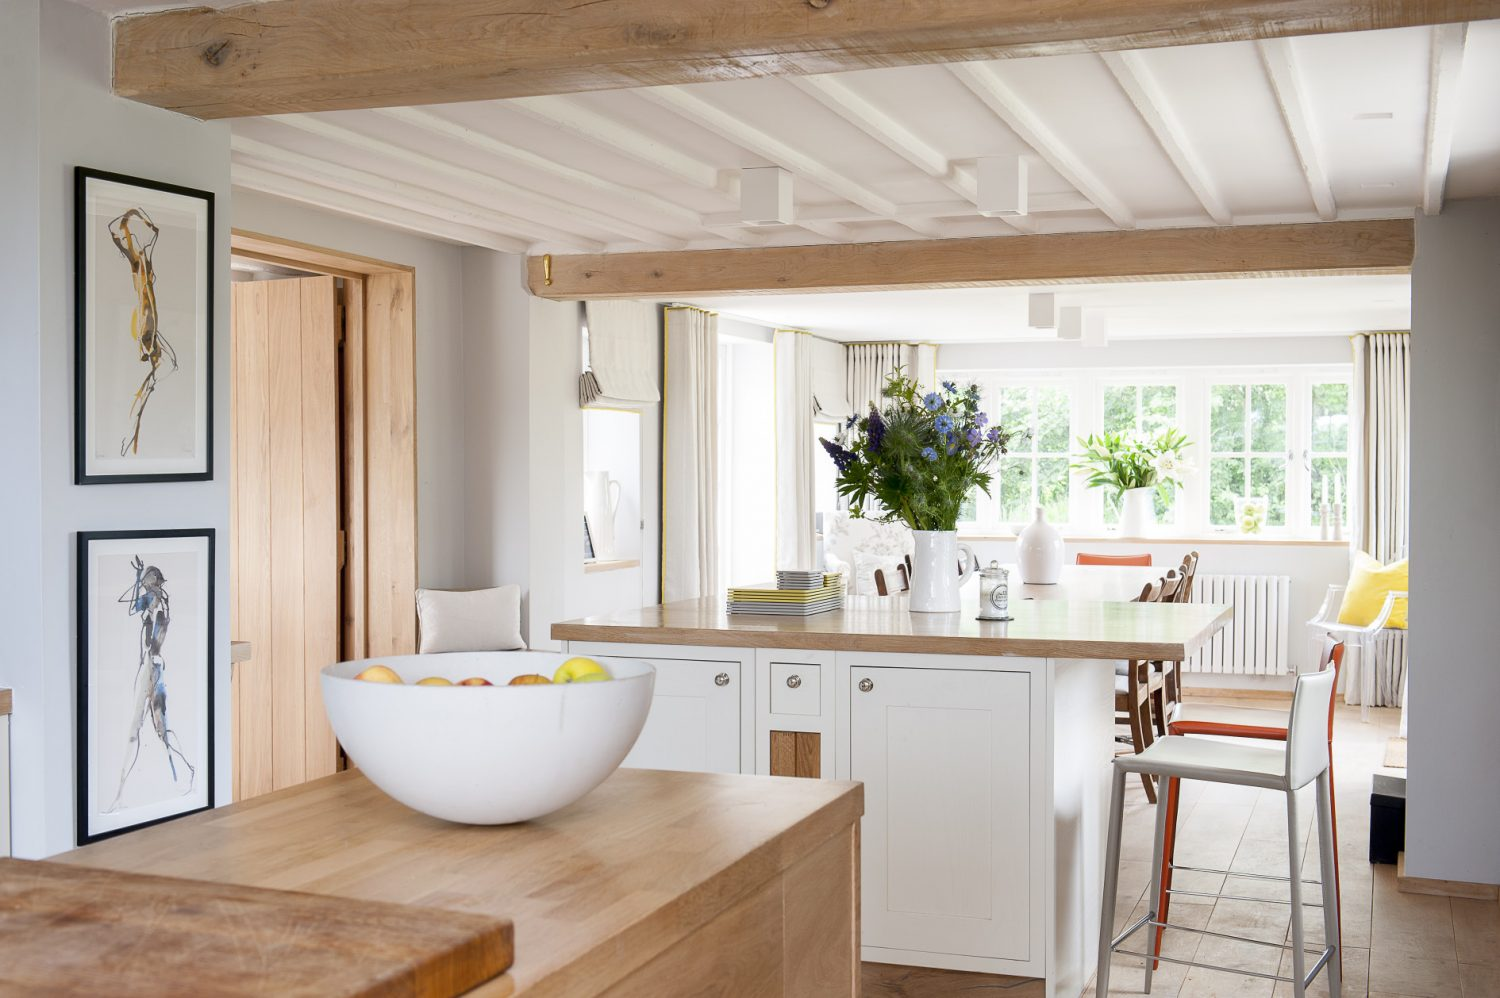 The couple built a two-storey extension, which has created a spacious open-plan kitchen and triple-aspect dining area with French doors into the garden